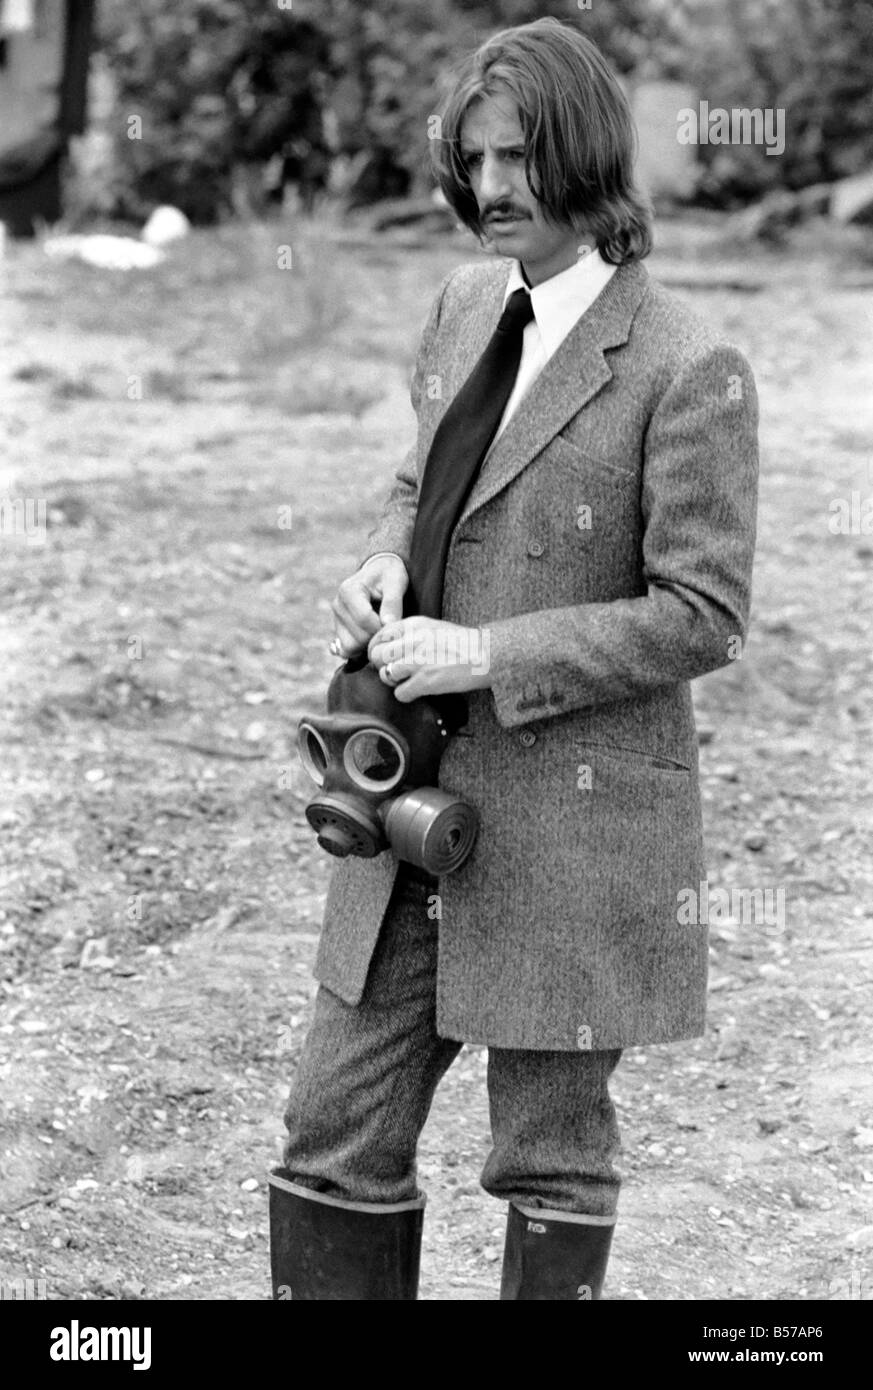 Peter Sellers Filming Ringo Starr With Gas Mask On Calling The People To Come For Their Free Money June 1969 Z06342 010